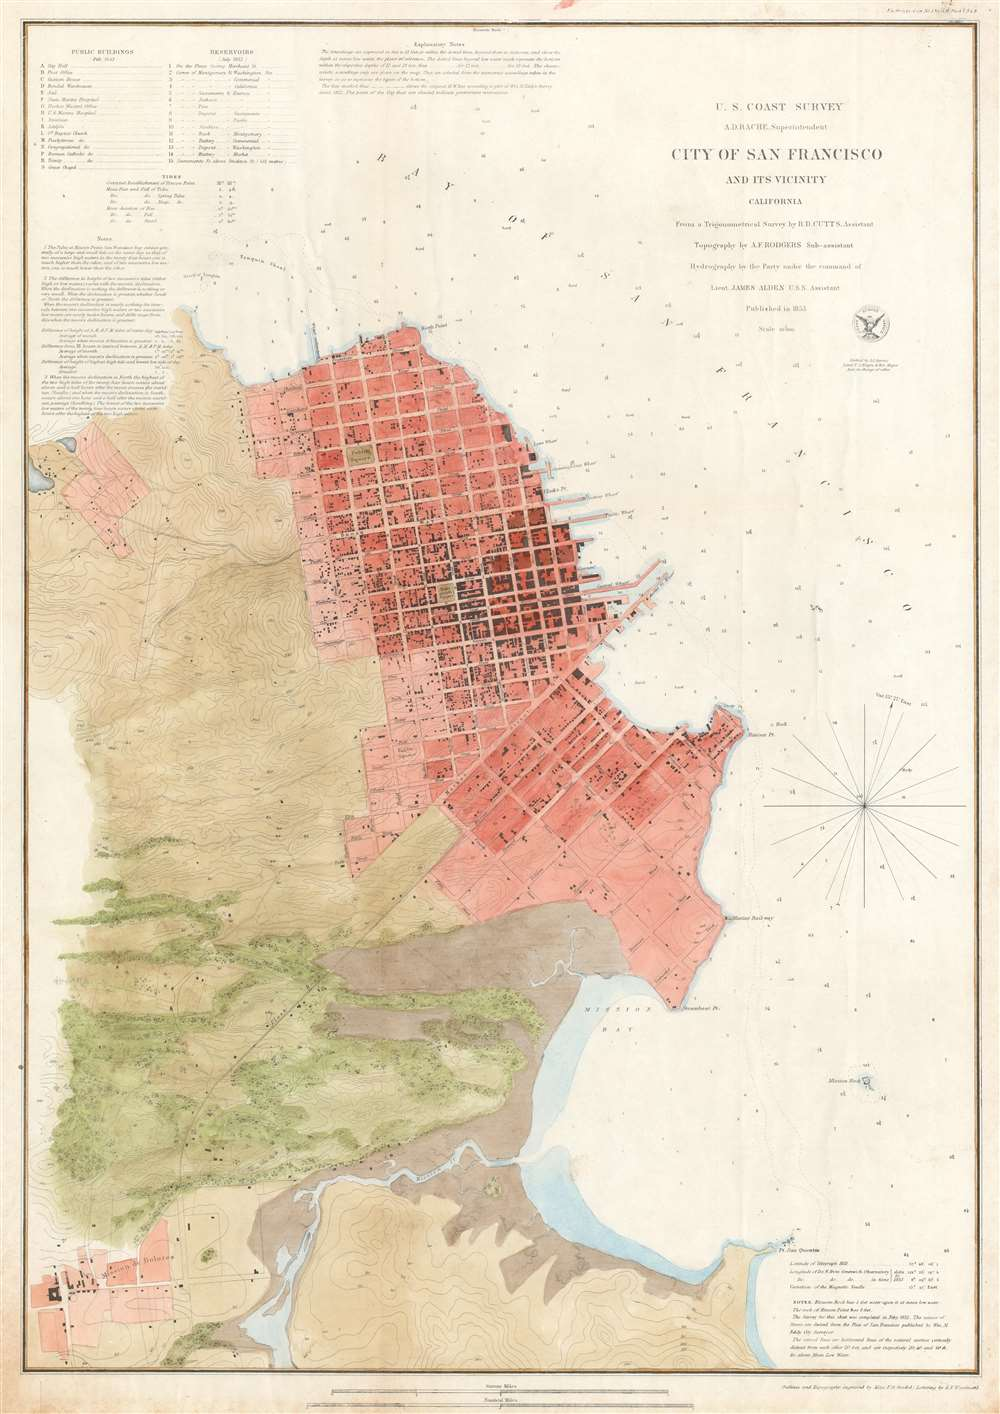 1853 U.S. Coast Survey Chart or Map of San Francisco, California